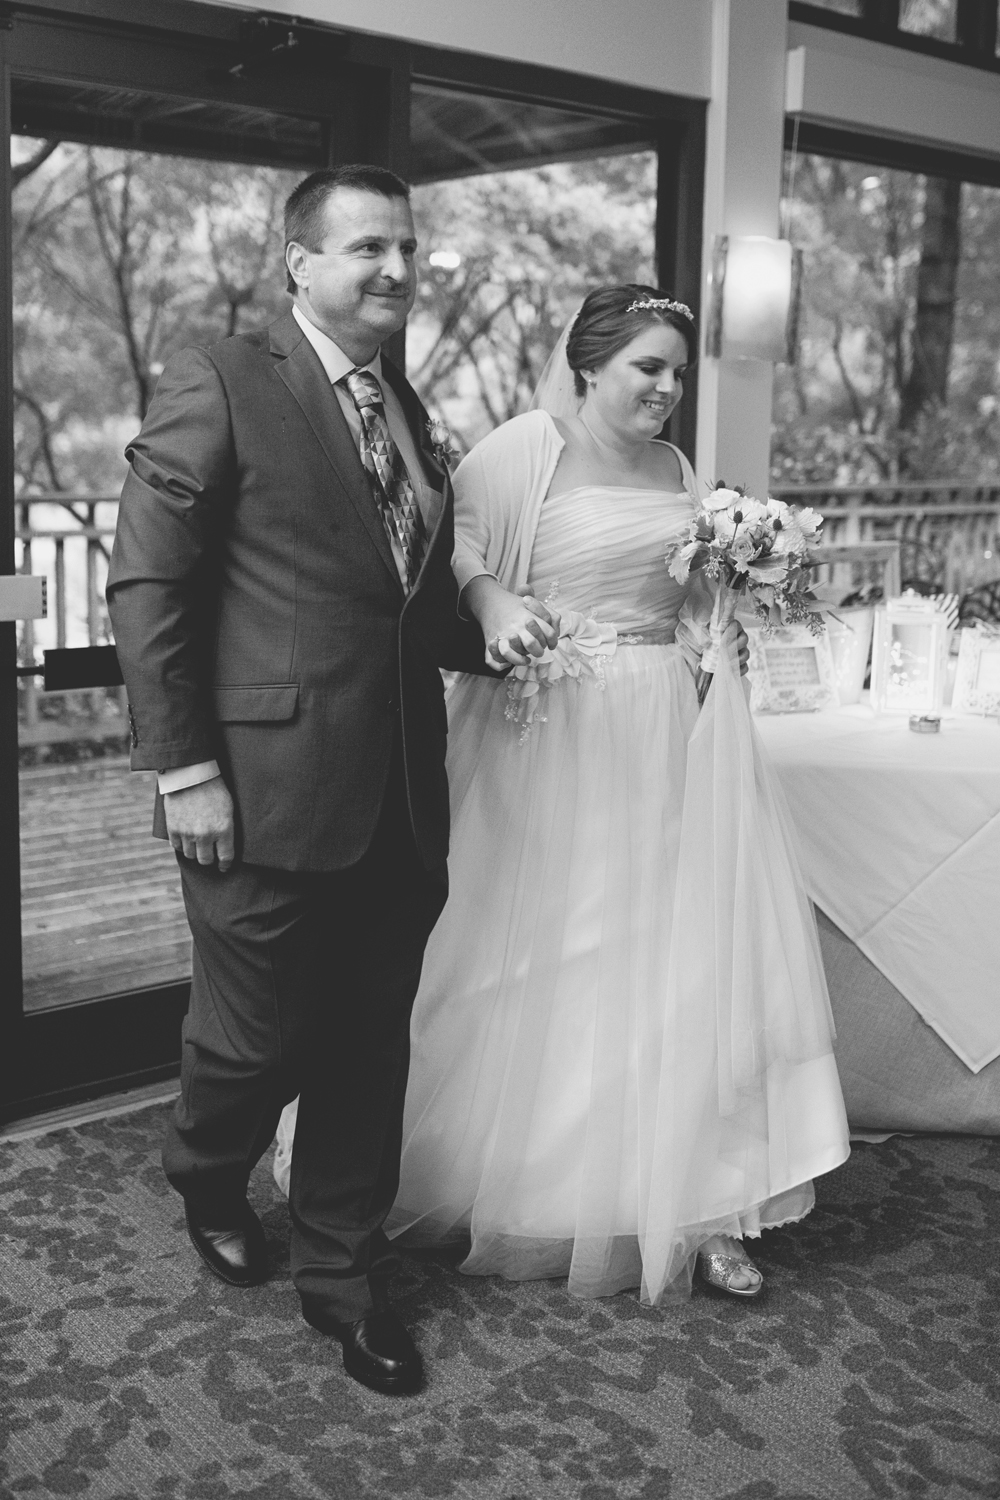 Lewis Ginter Botanic Garden Wedding | Richmond, Virginia, Wedding | Wedding ceremony